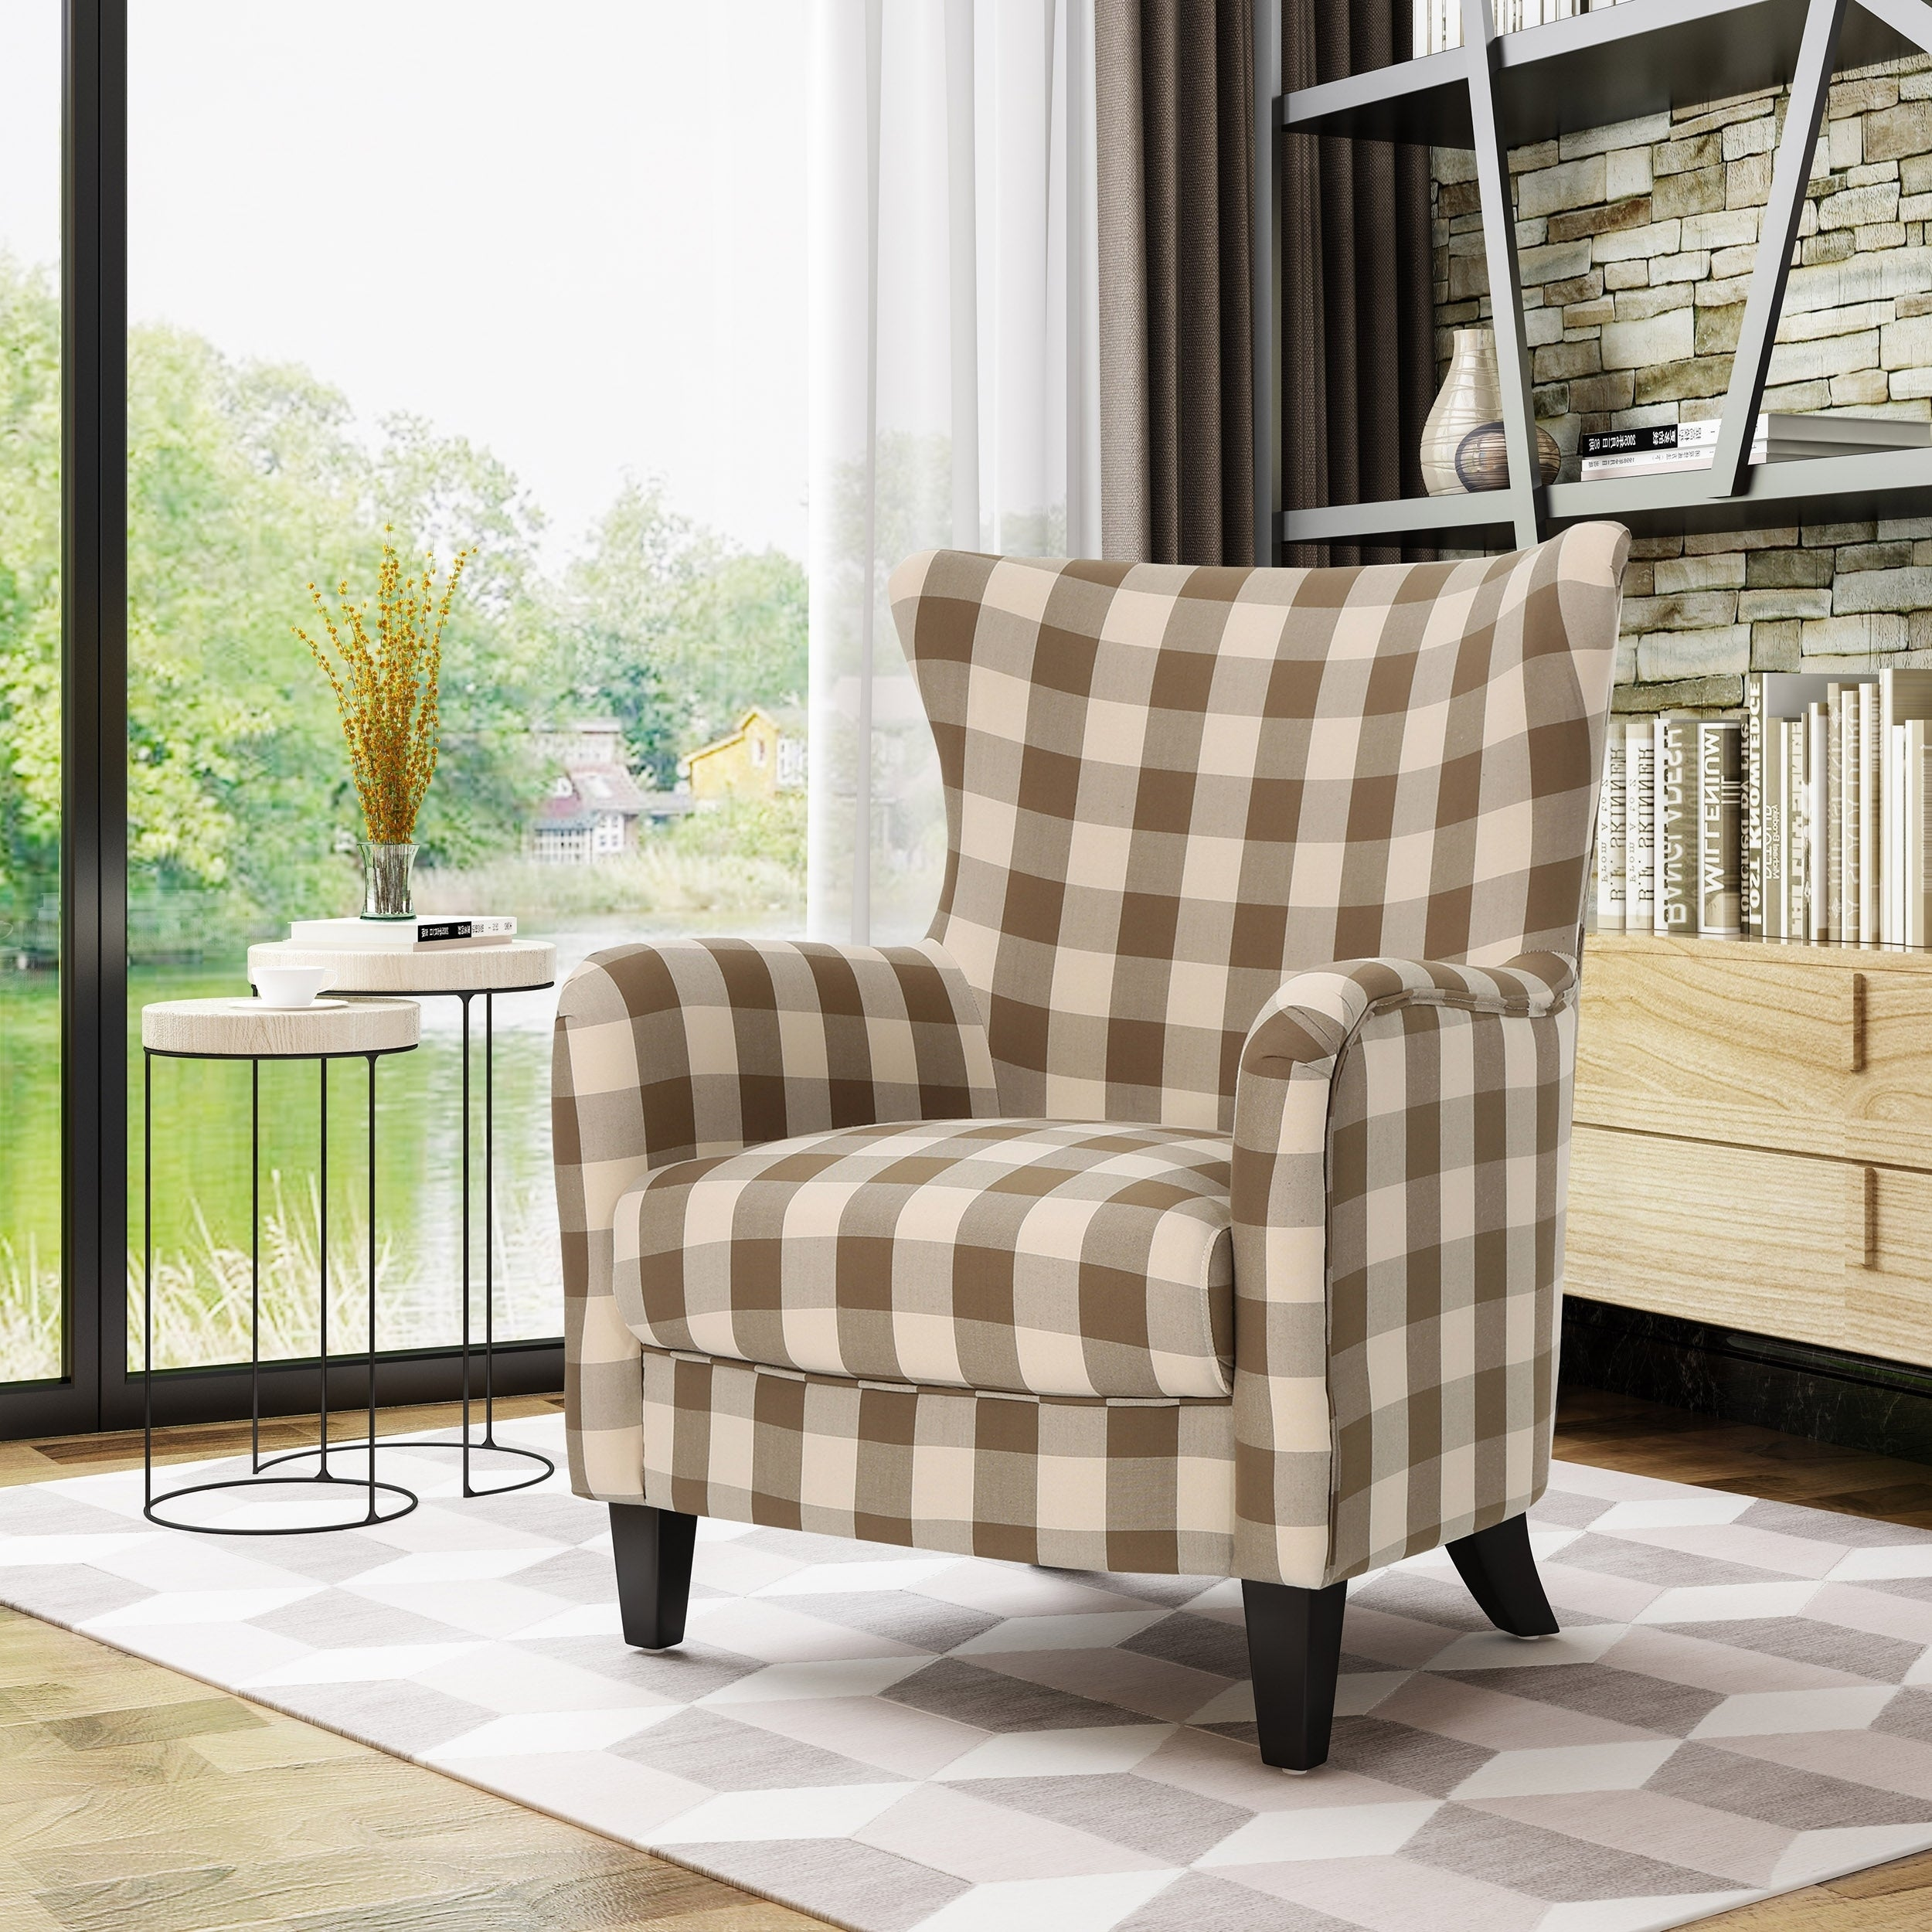 Exceptionnel Shop Arabella Farmhouse Armchair By Christopher Knight Home   On Sale    Free Shipping Today   Overstock.com   22632283